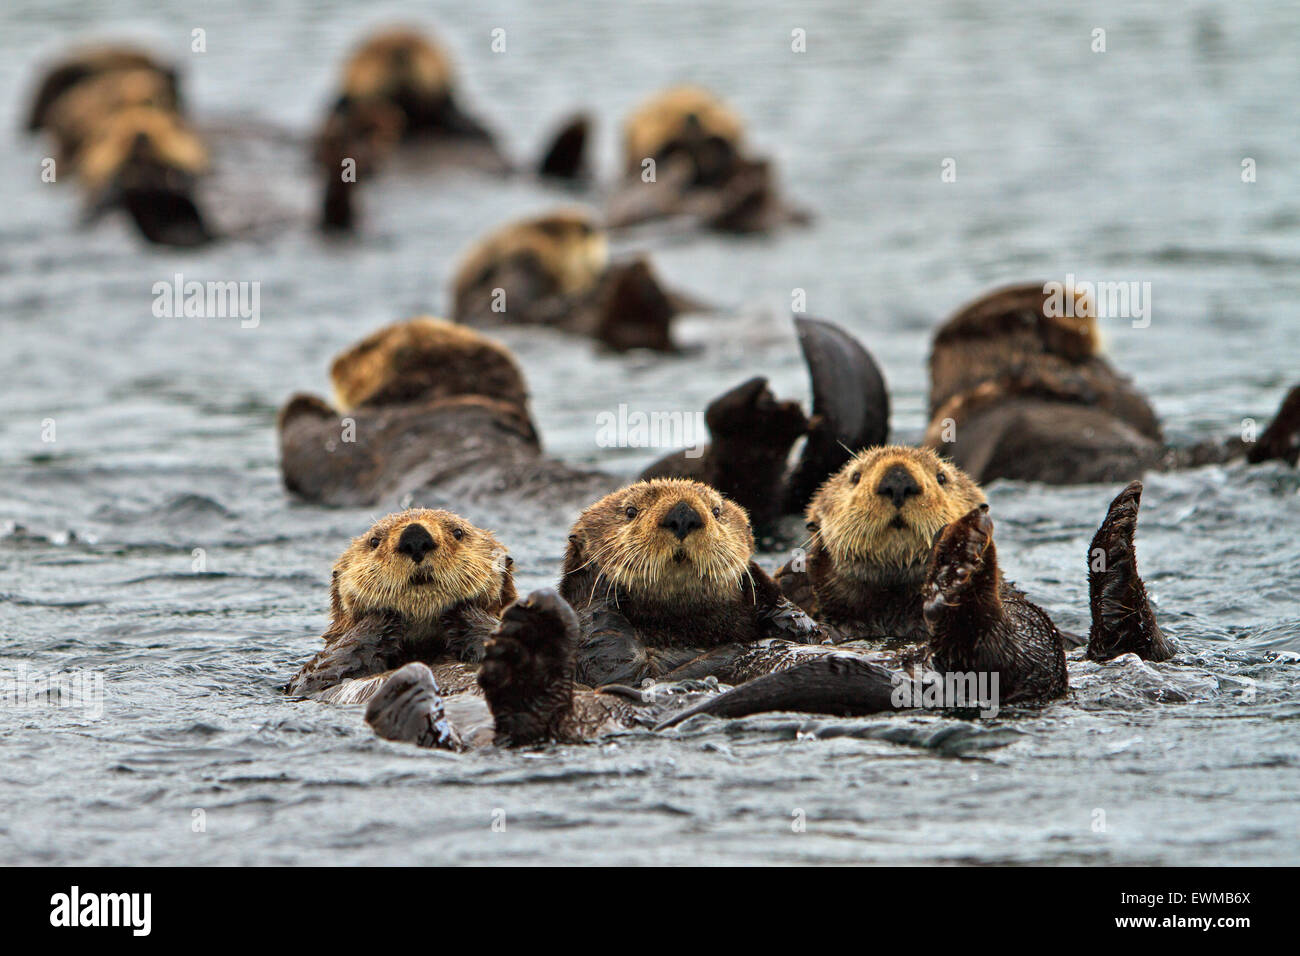 Sea otter, Enhydra lutris, belongs to the weasel family, photographed of the west coast of northern Vancouver Island, - Stock Image